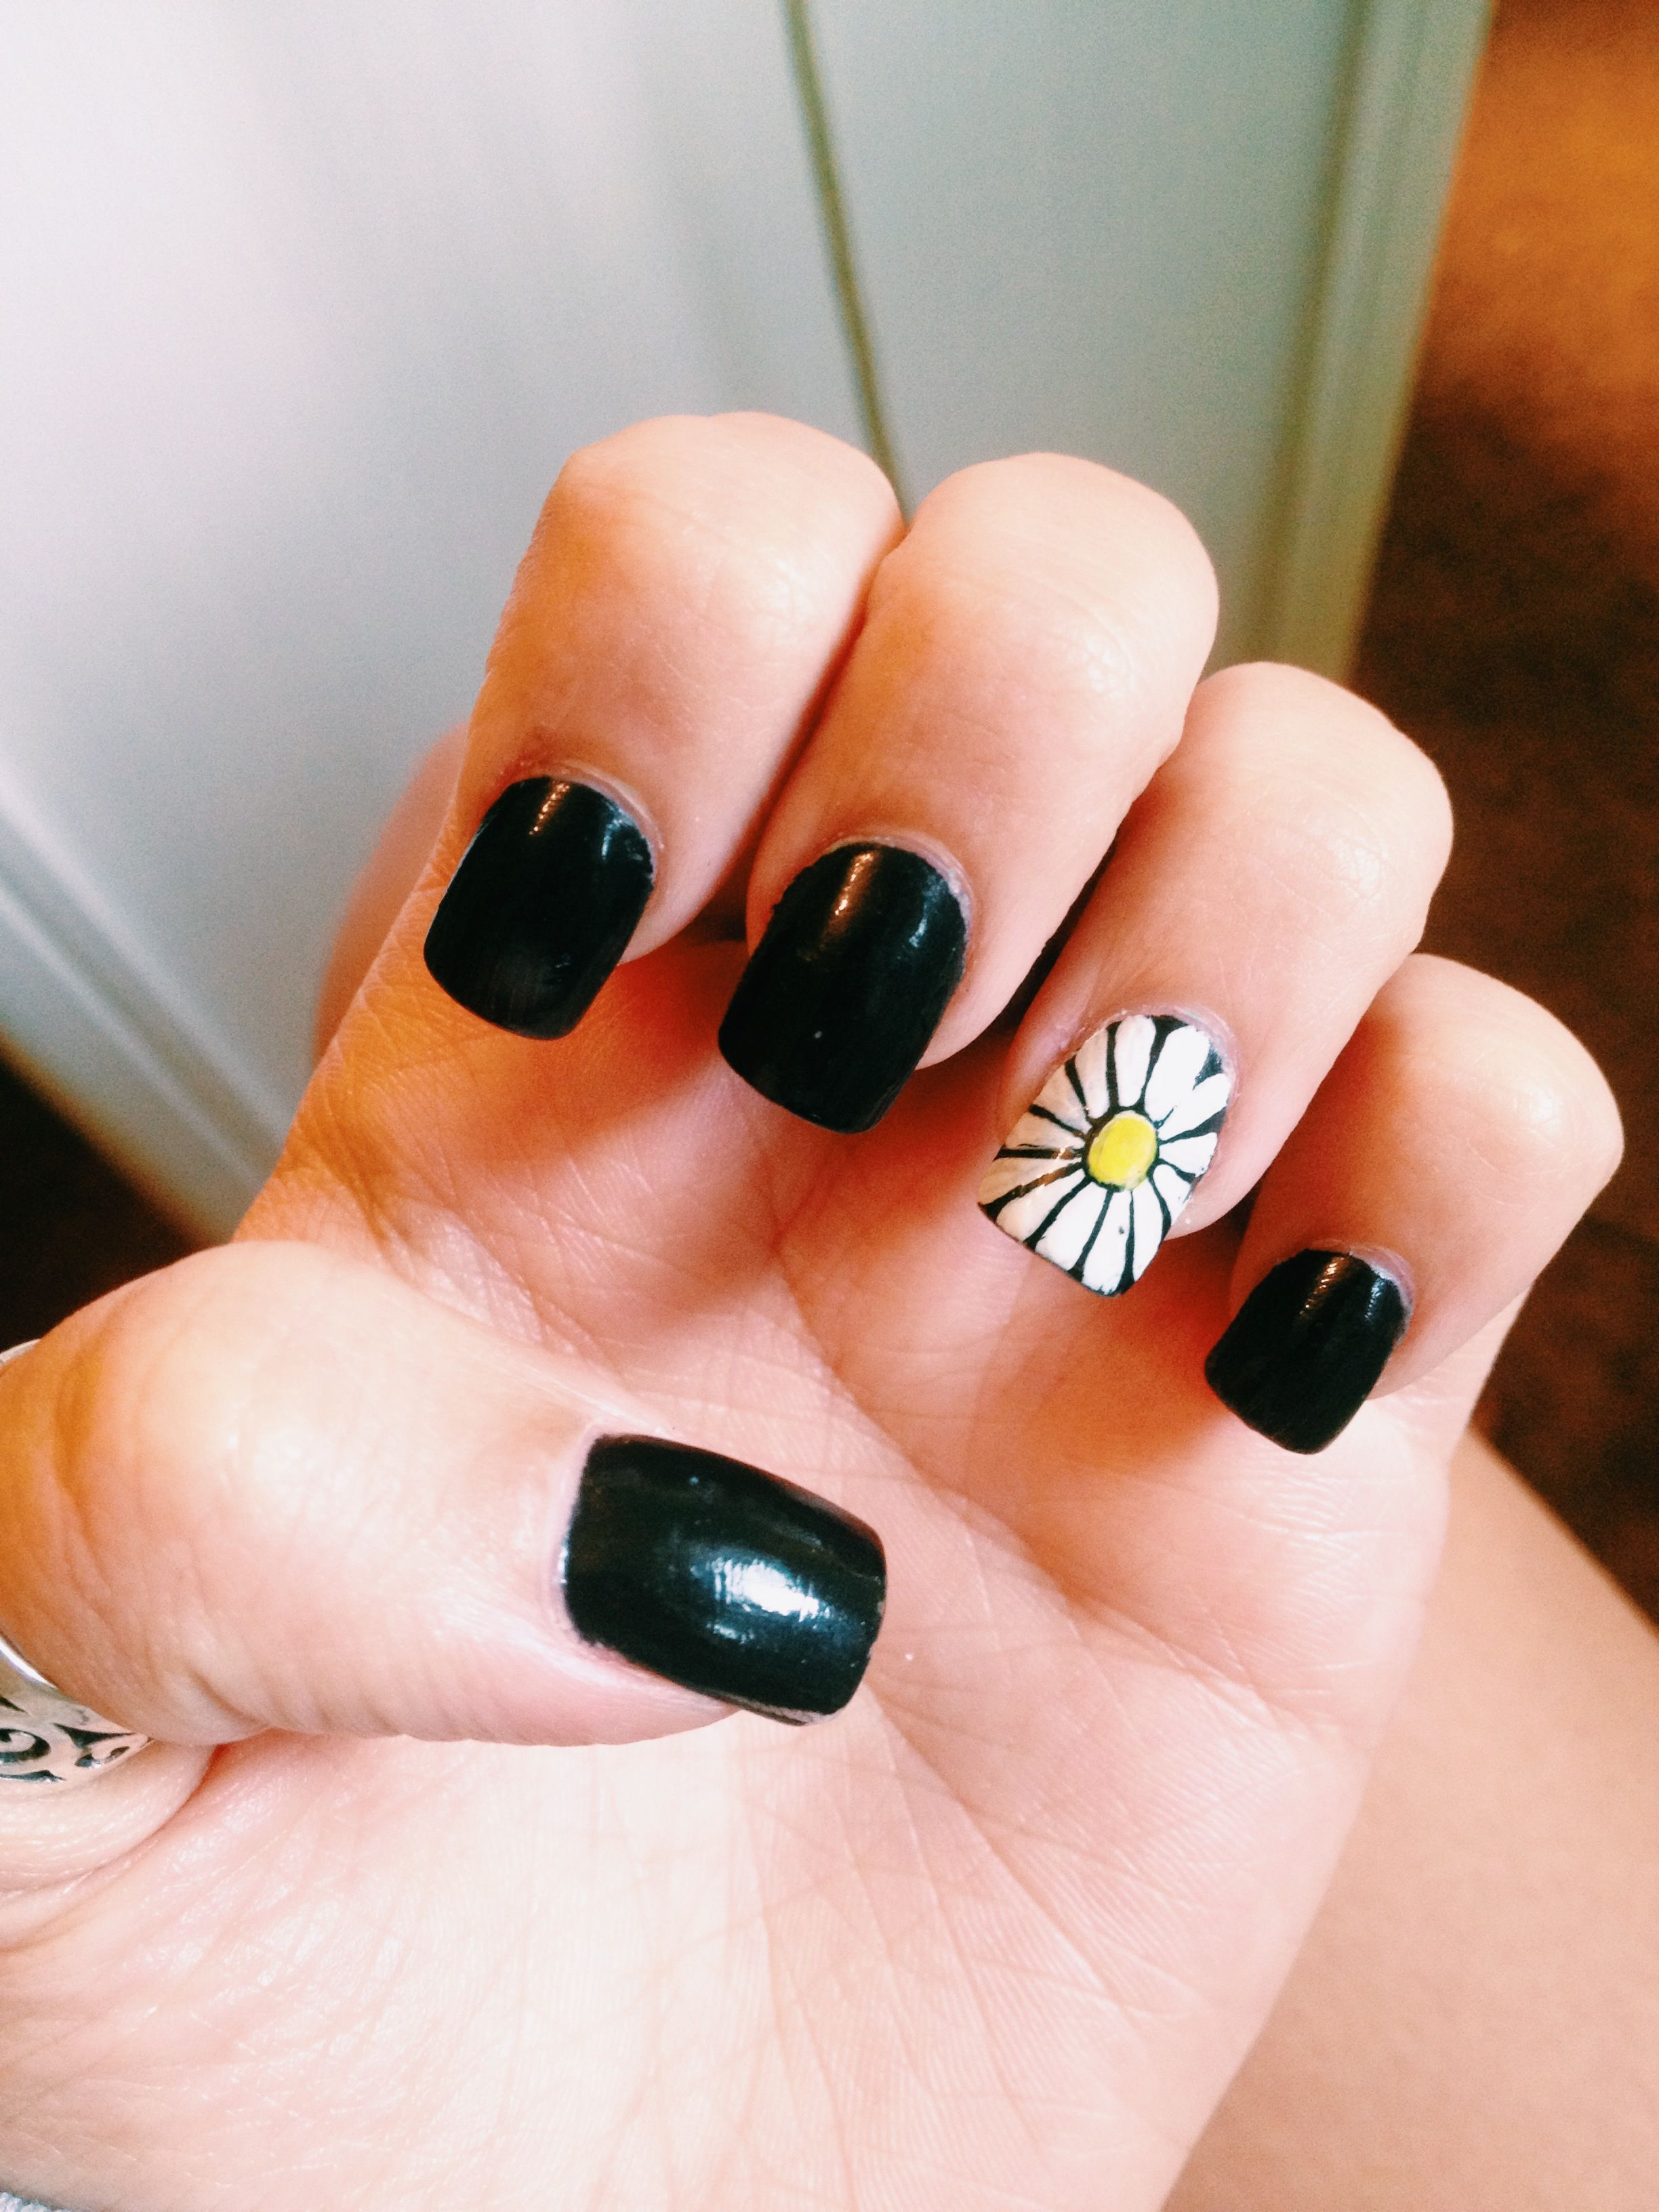 Acrylic nails painted black with a vintage white and yellow daisy ...